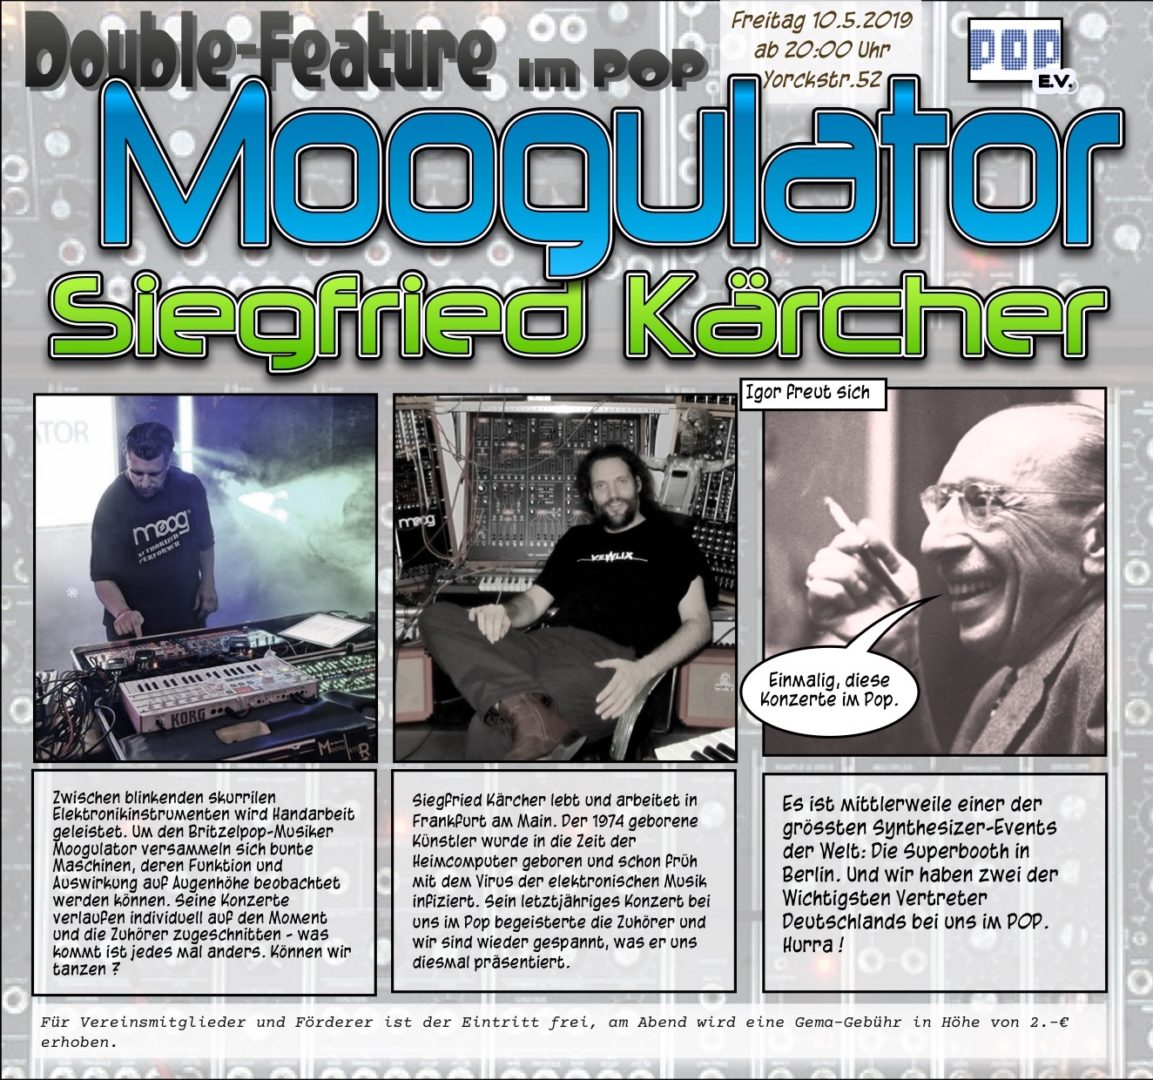 Moogulator live im Pop, Berlin 10.5., 20:00. Yorckstr.52, Berlin